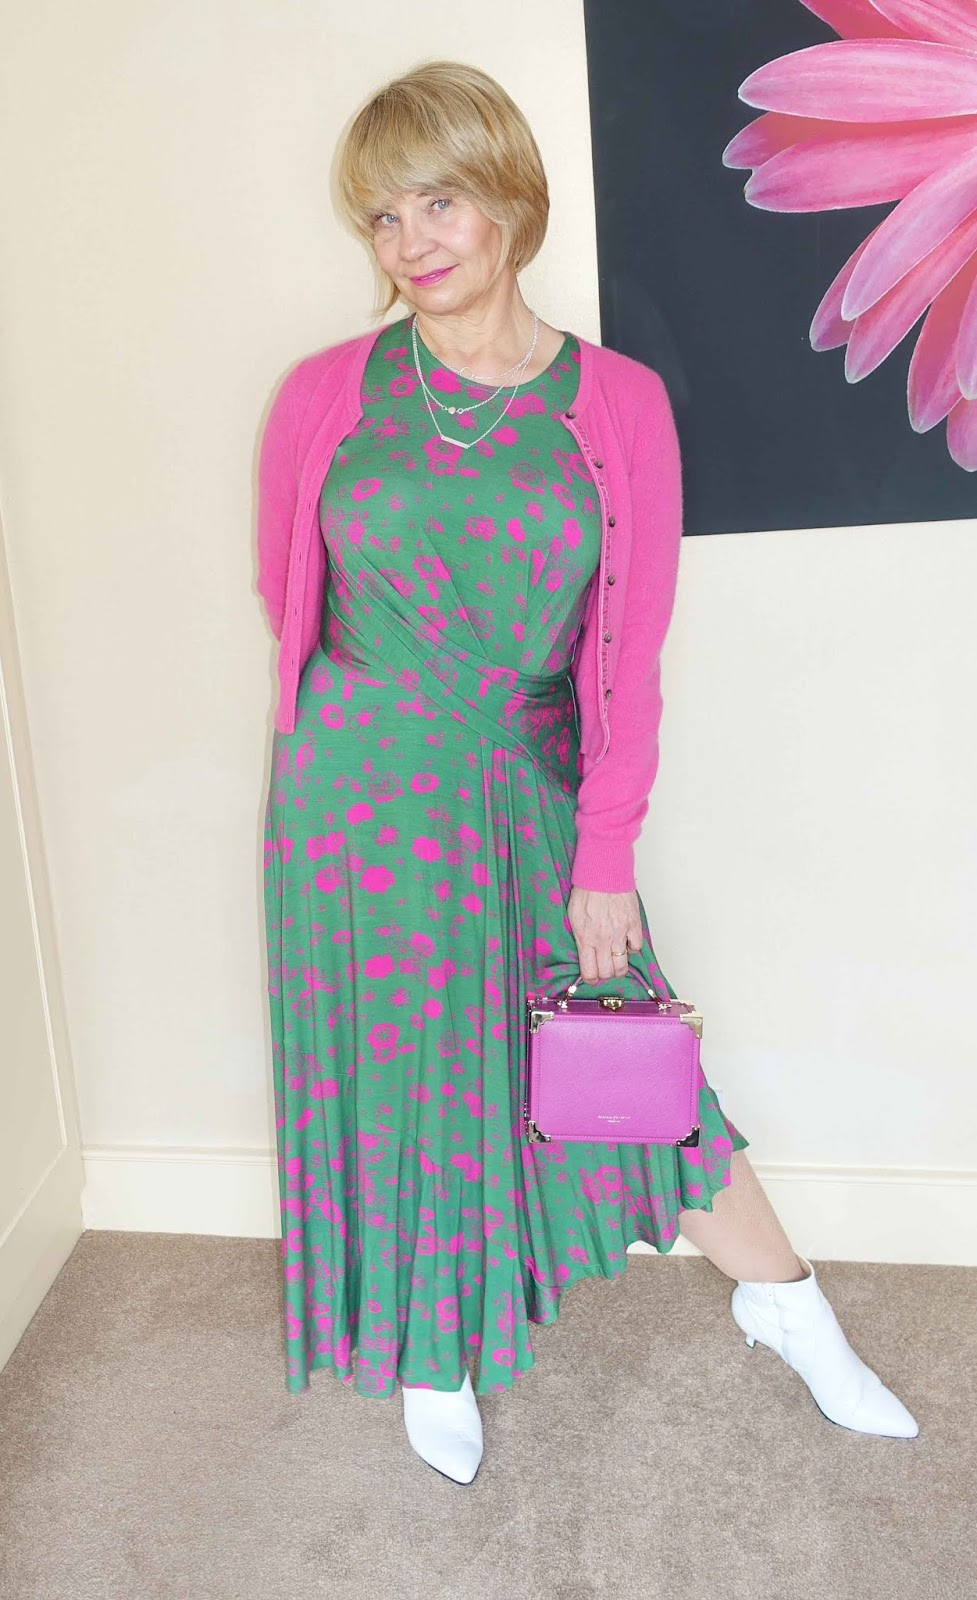 Green and pink asymmetric dress by Studio at Preen by Debenhams, ideal for all seasons